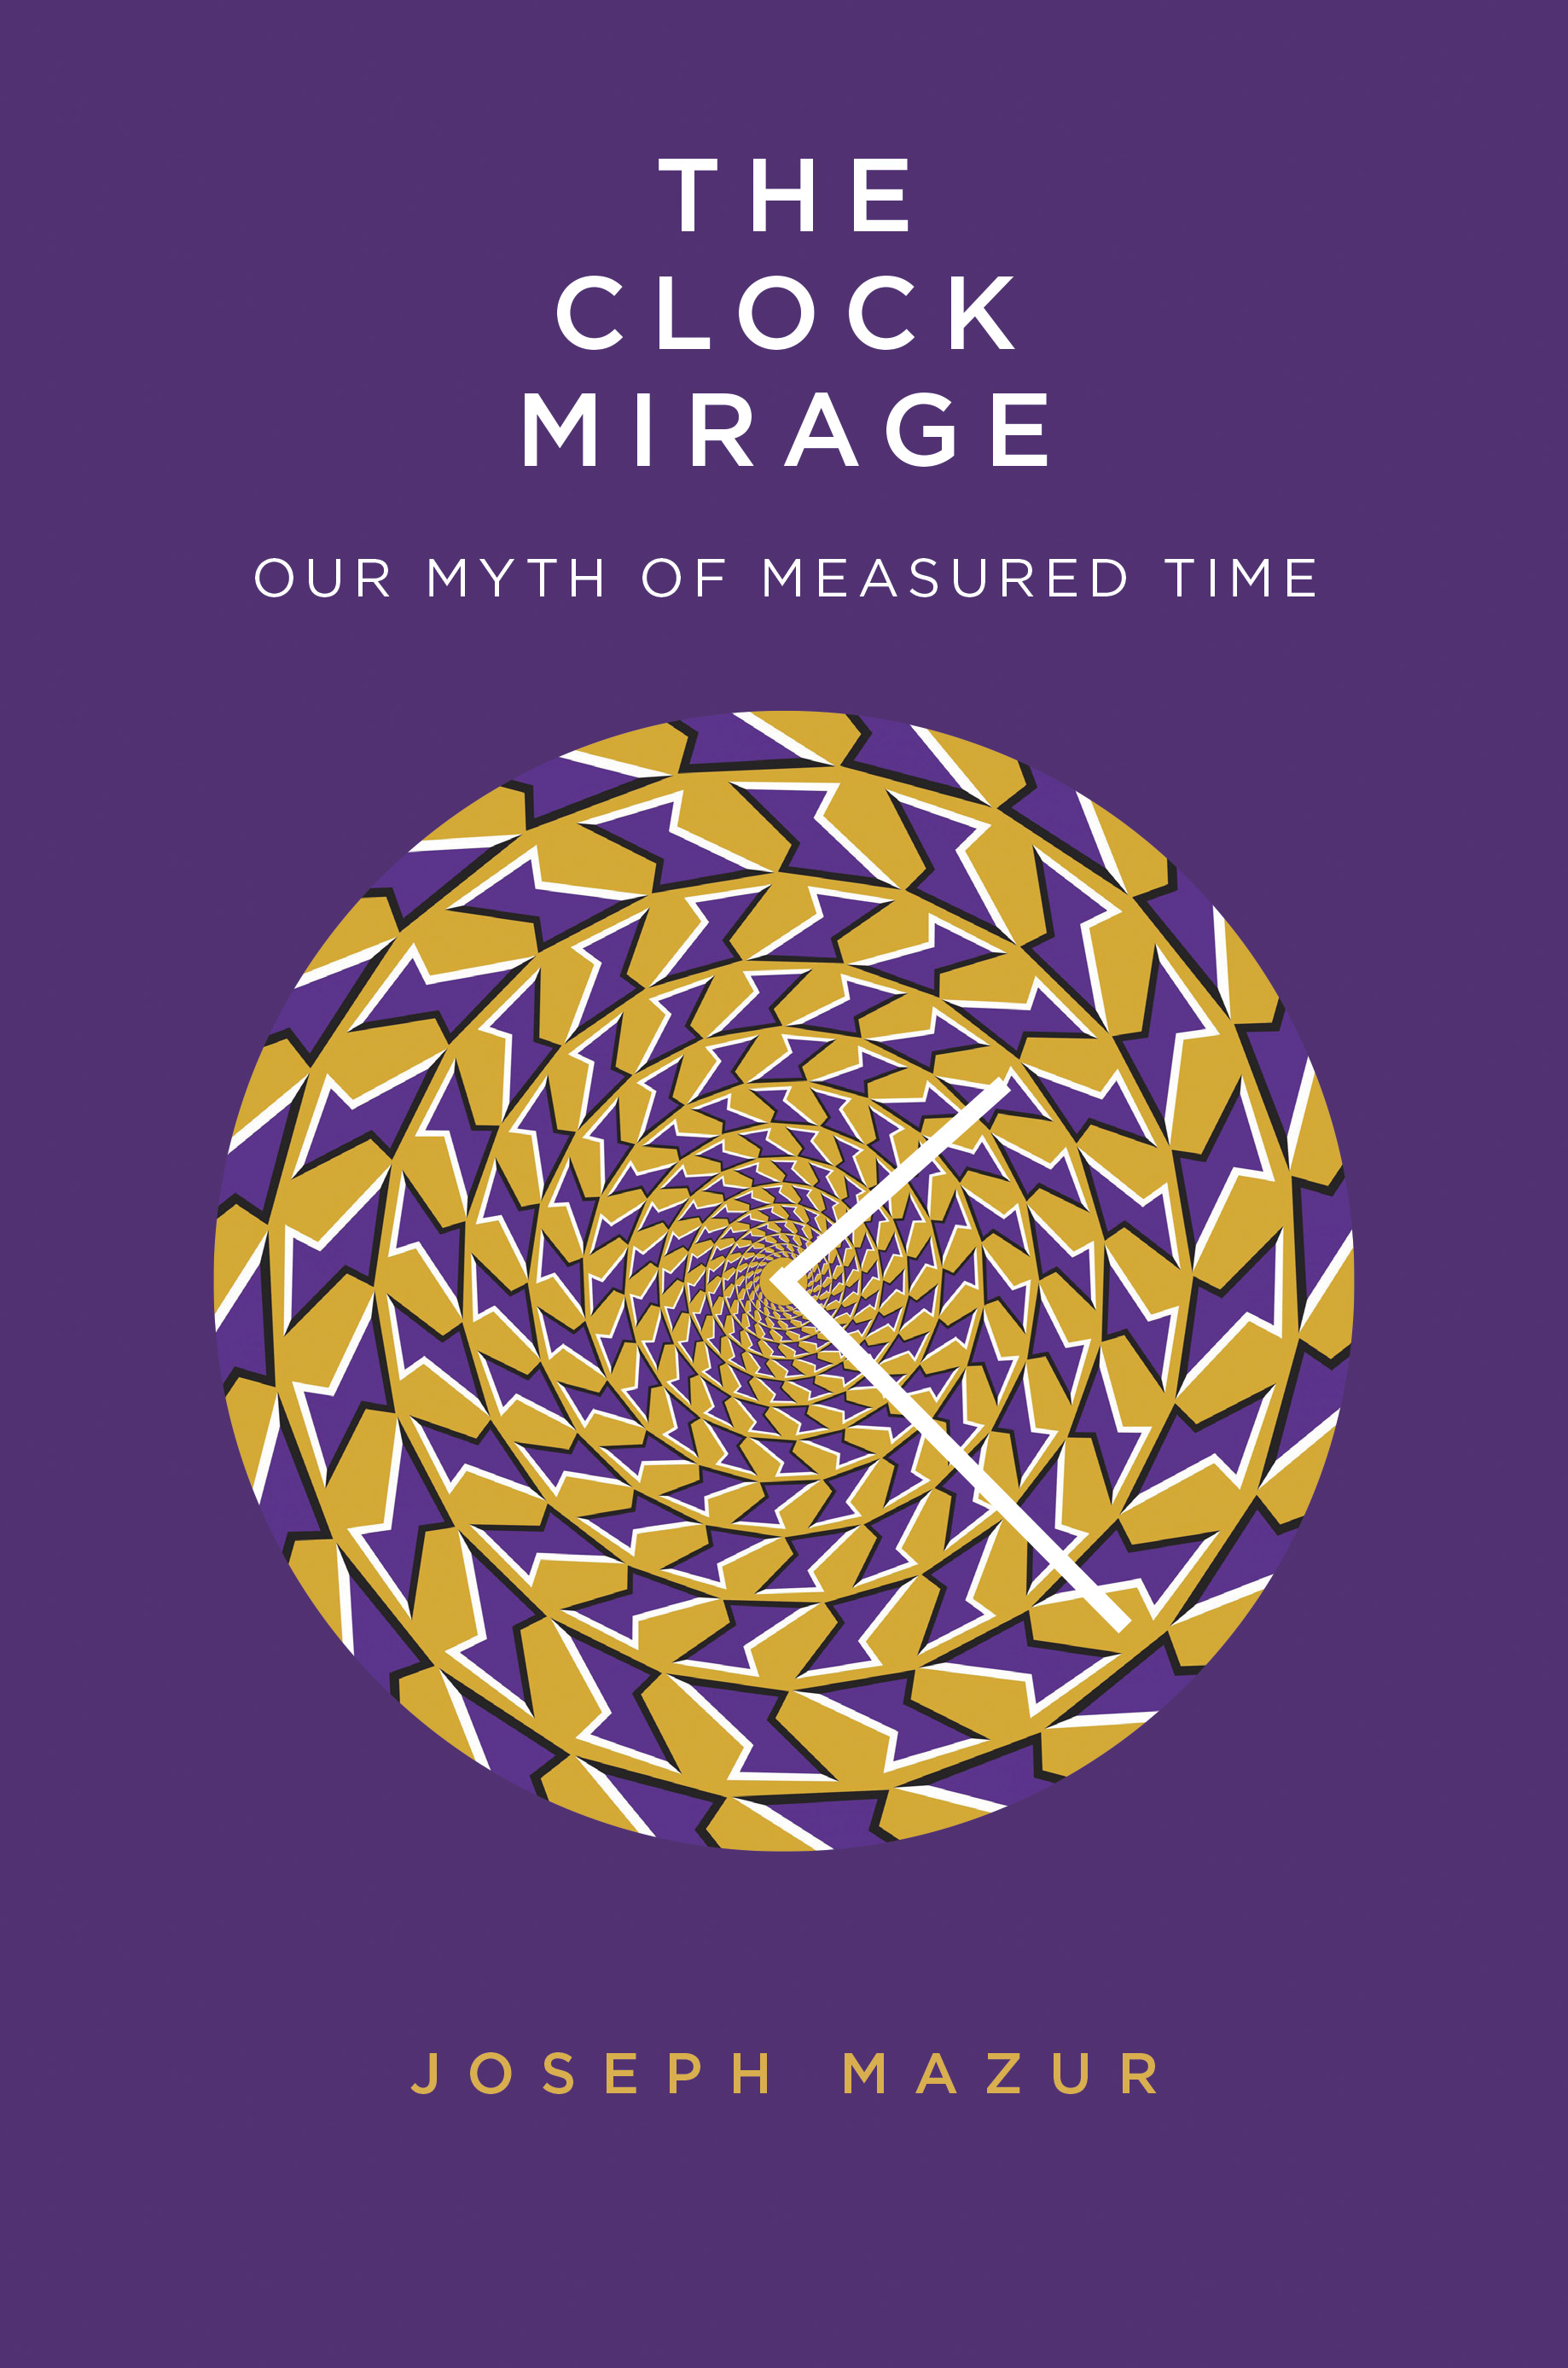 The Clock Mirage: Our Myth of Measured Time